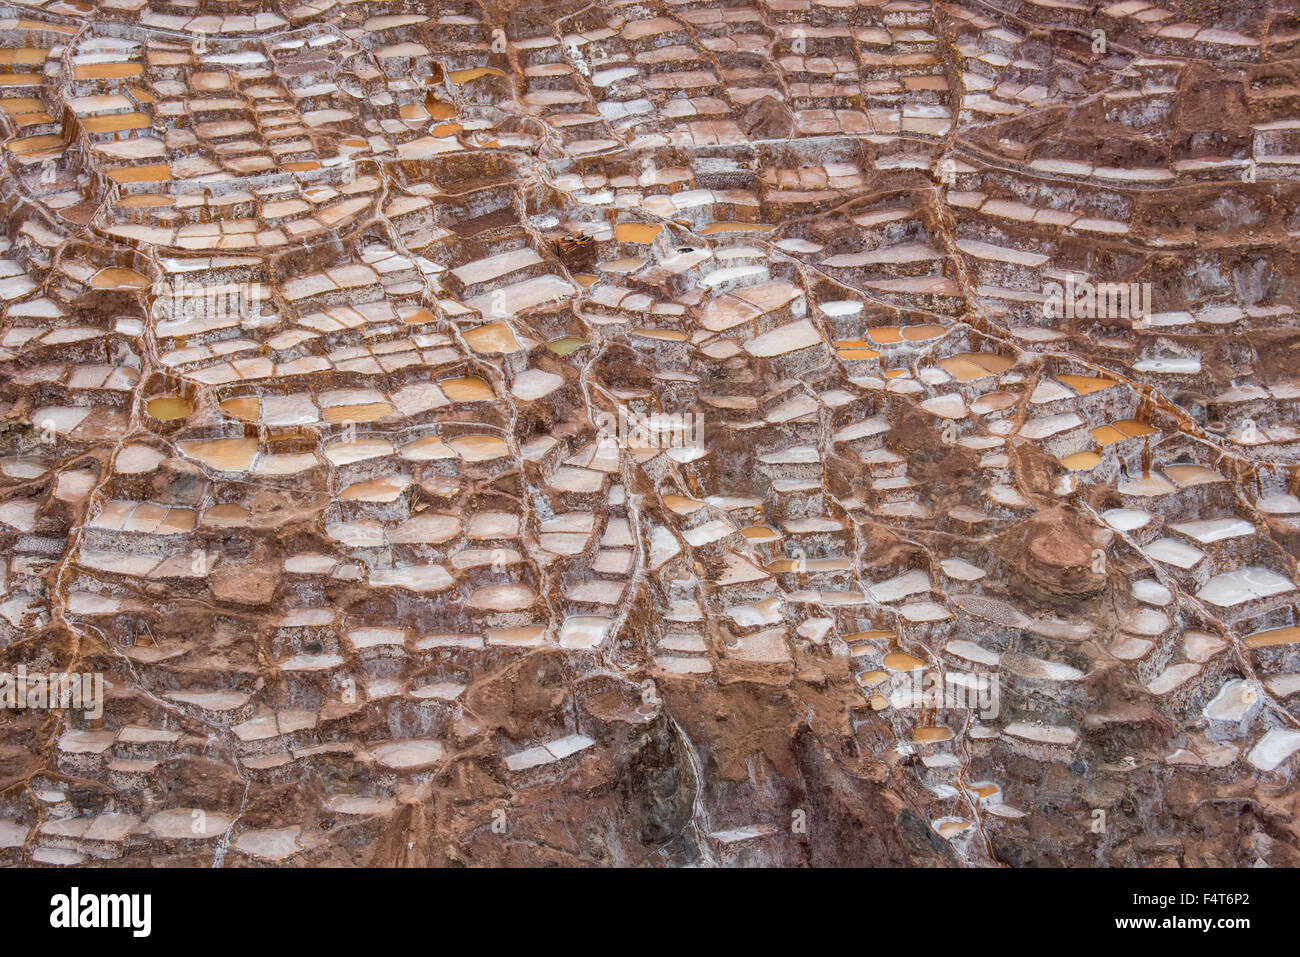 South America, Latin America, Peru, Cuzco, Salt mines in the town of Maras in the Sacred Valley - Stock Image